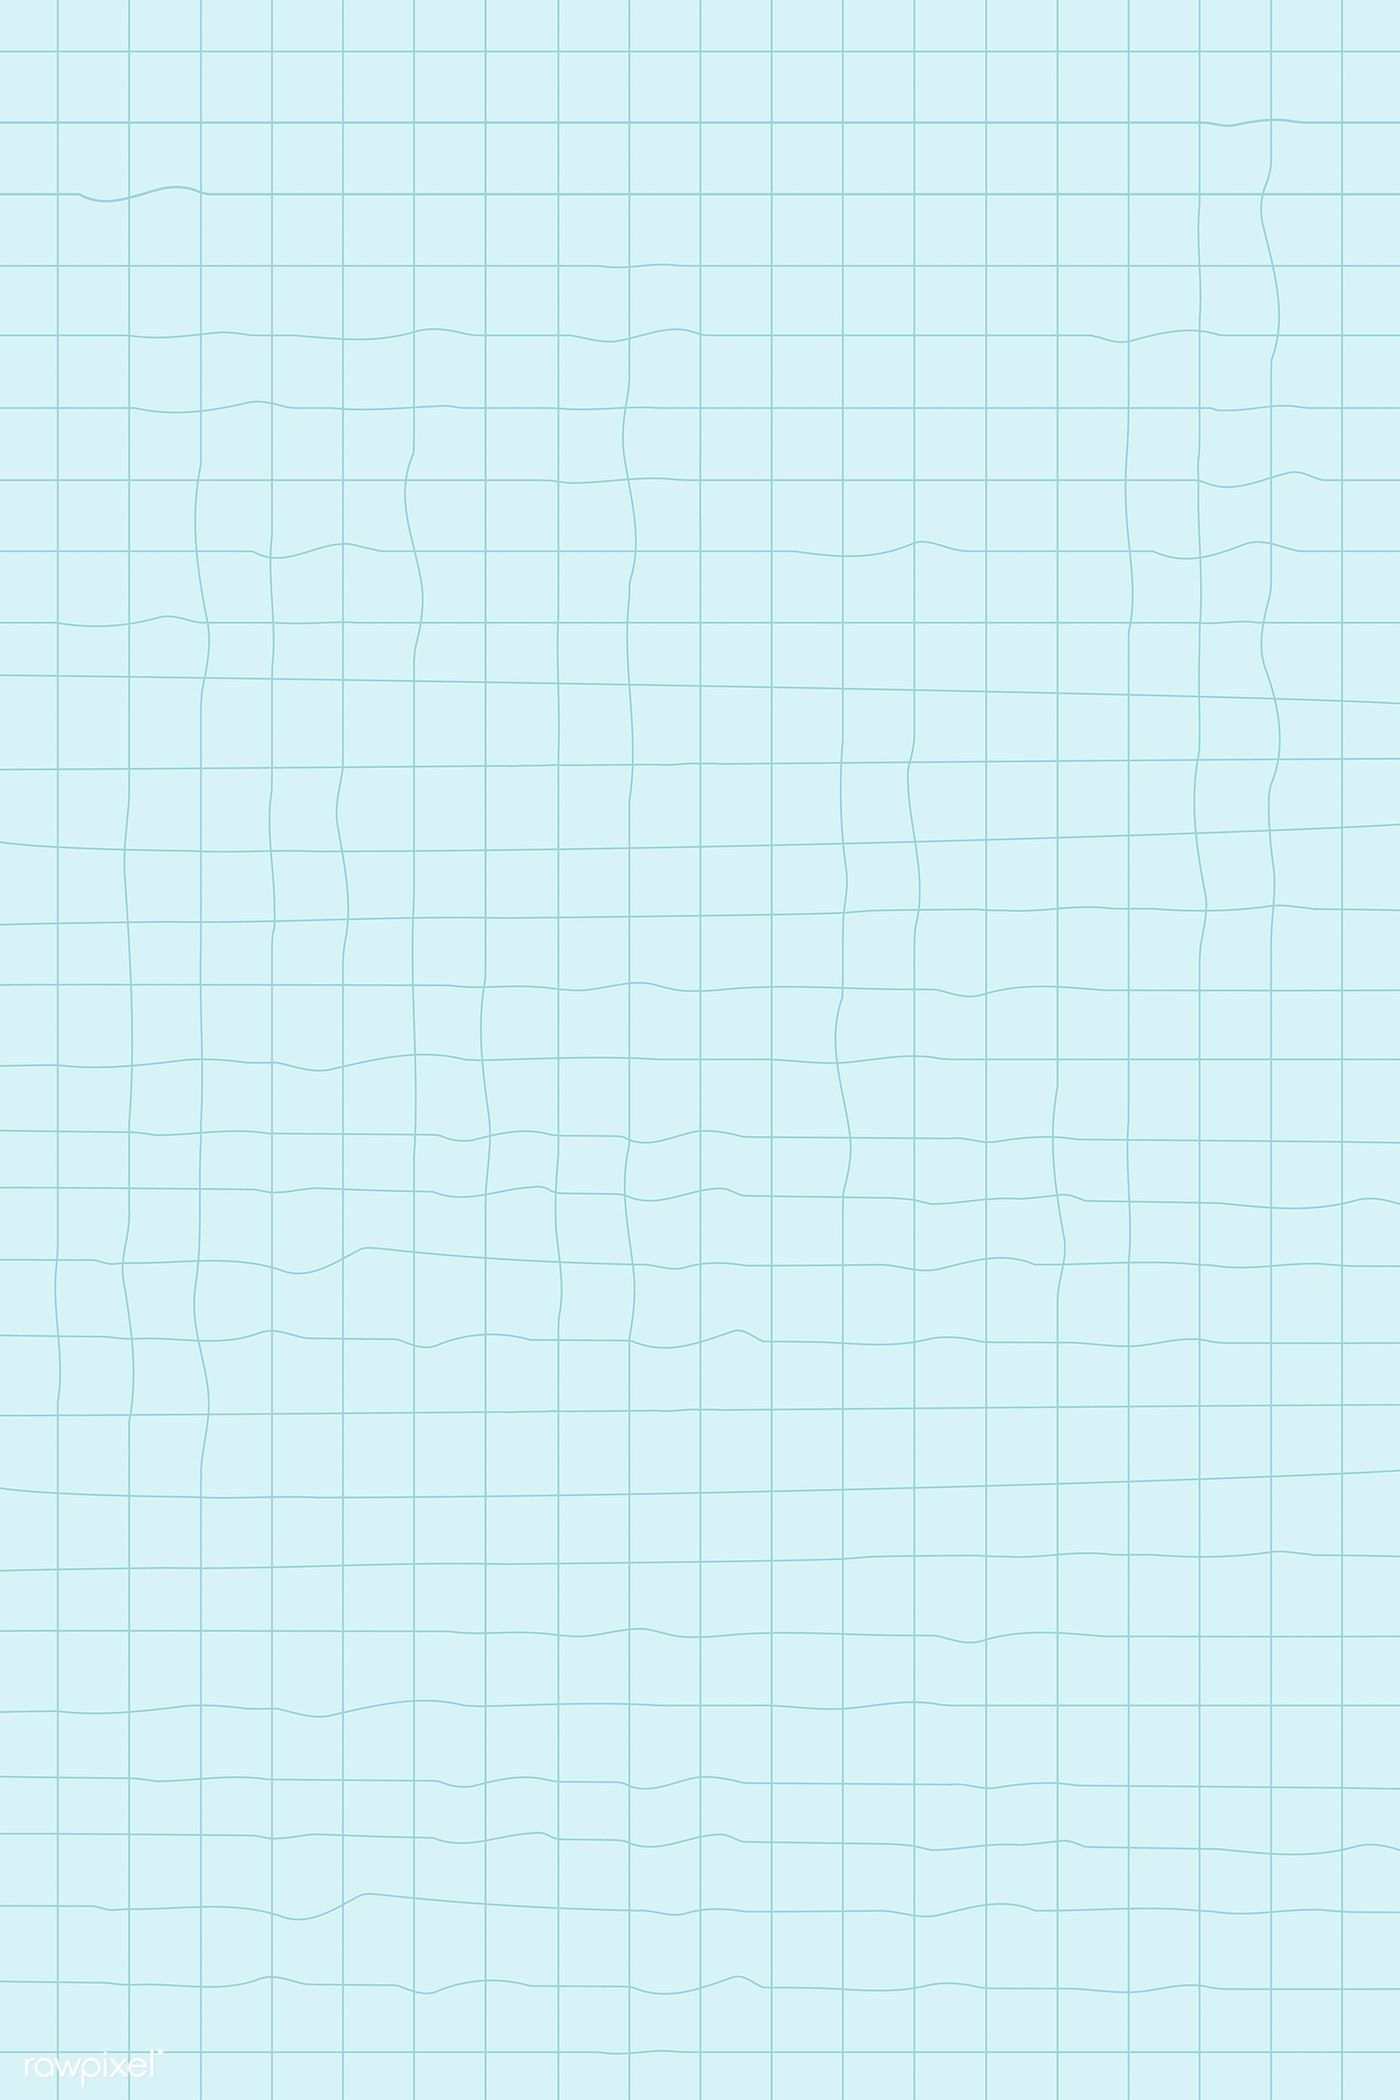 Blank Blue Notepaper Design Vector Free Image By Rawpixel Com Note Paper Vector Free Grid Wallpaper